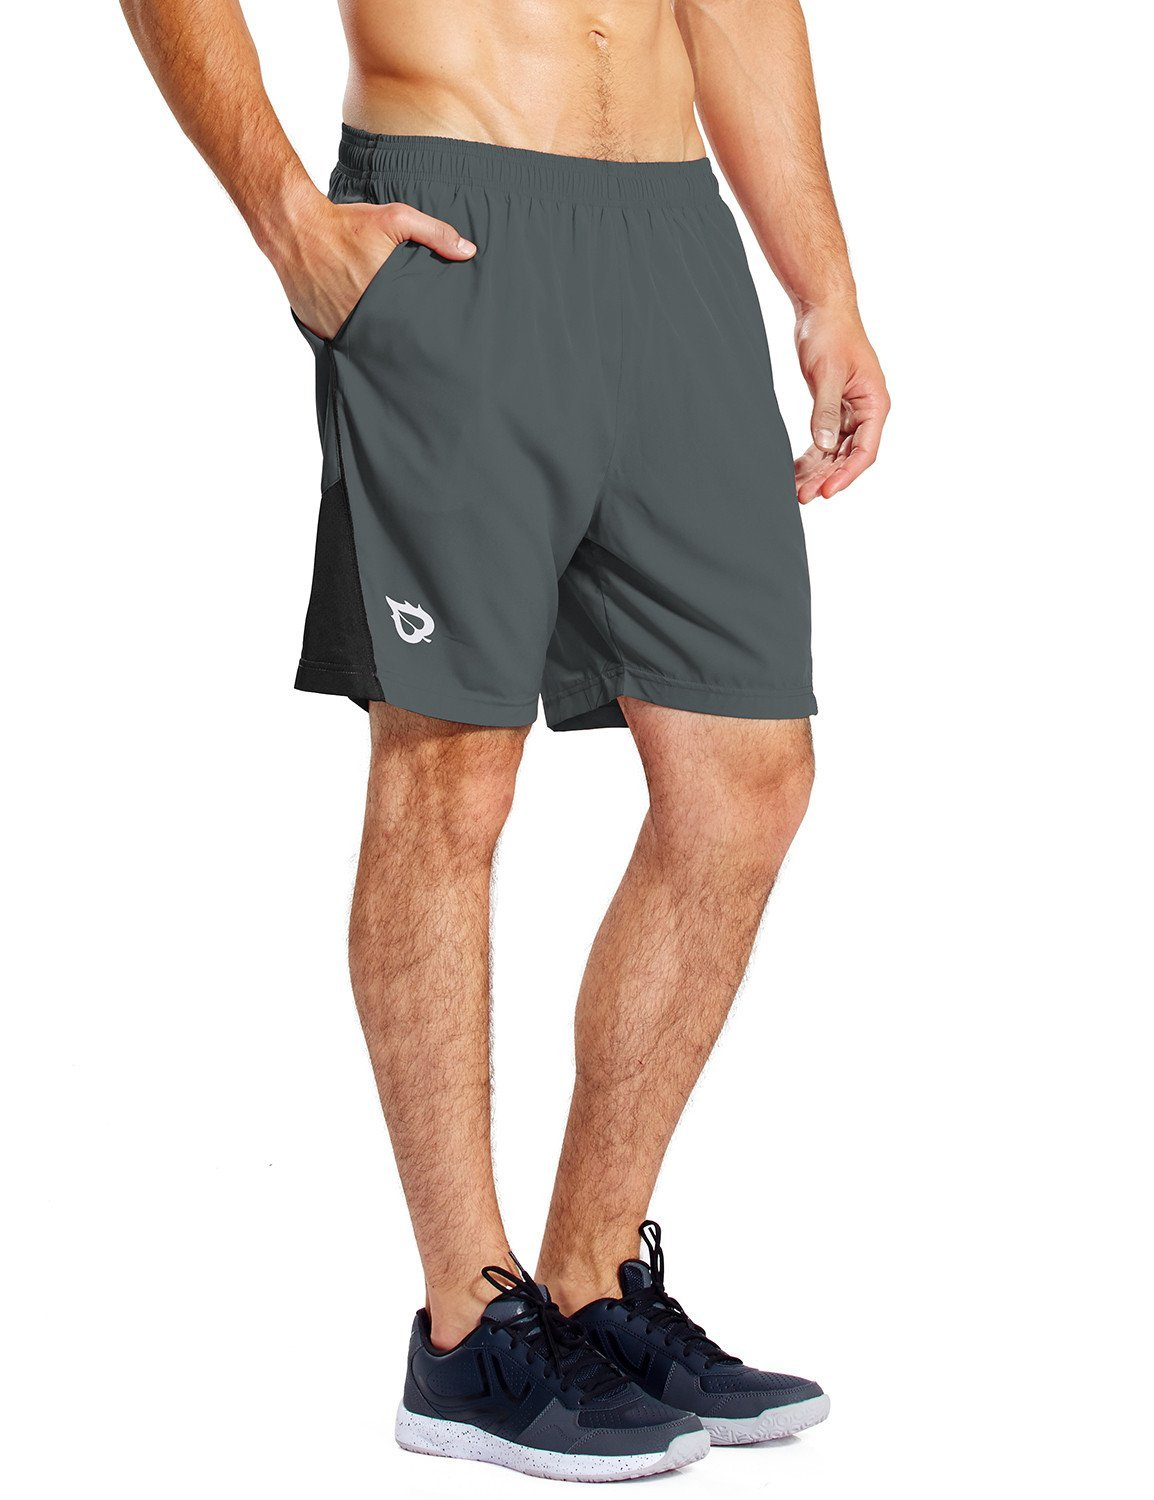 Baleaf Men's 7 Inches Quick Dry Workout Running Shorts Mesh Liner Zip Pockets Gray Size XXXL by Baleaf